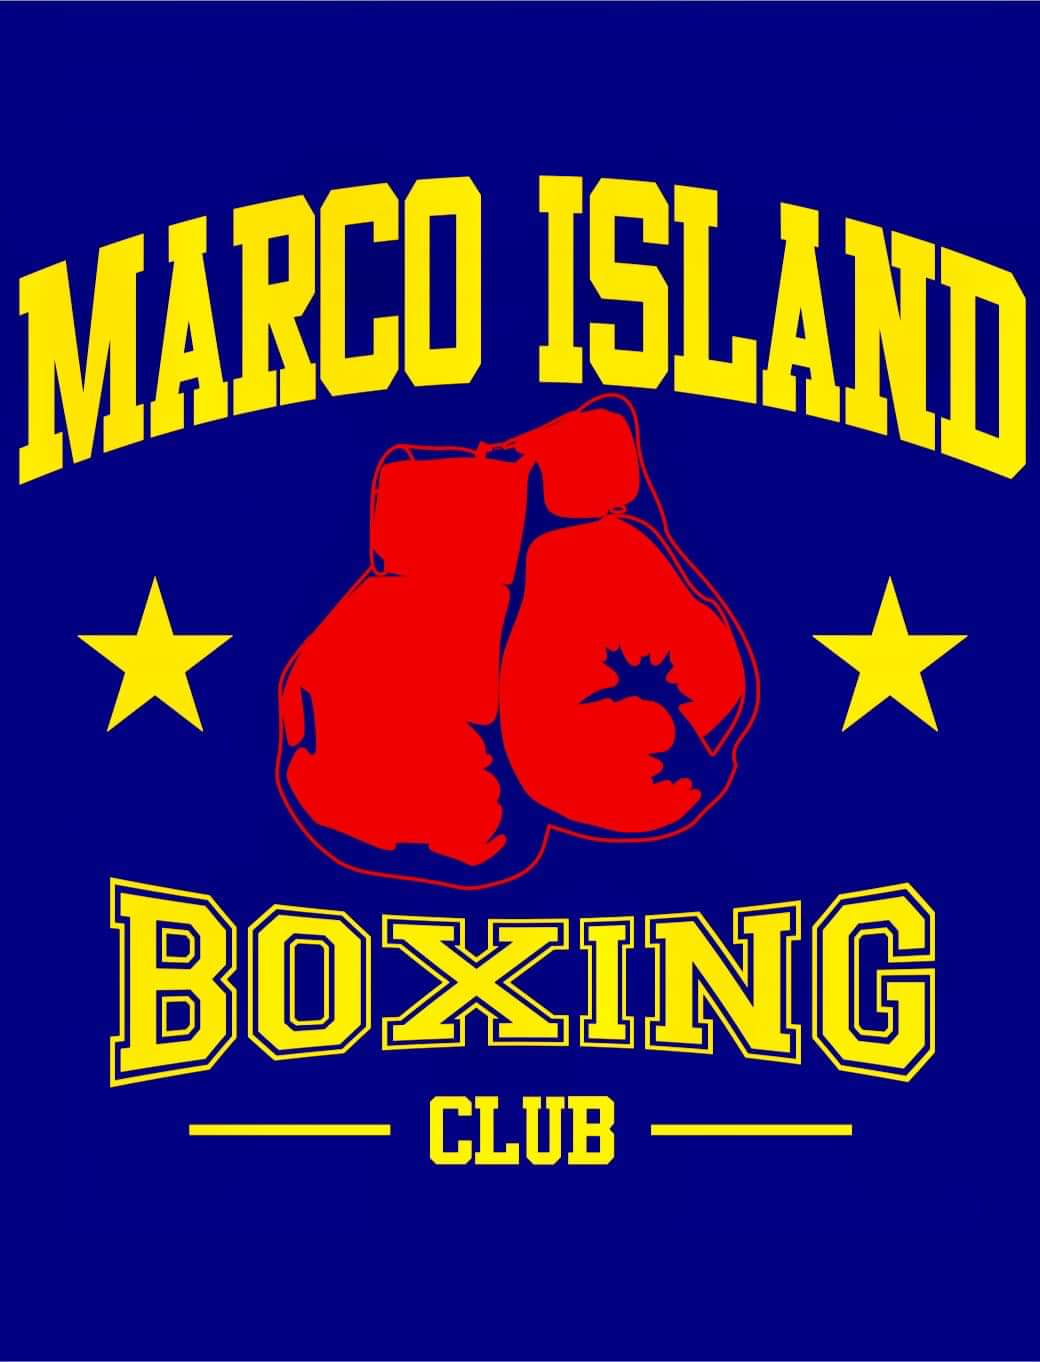 Marco Island Boxing Club - Frank Gervin Memorial, Collier, Florida, United States